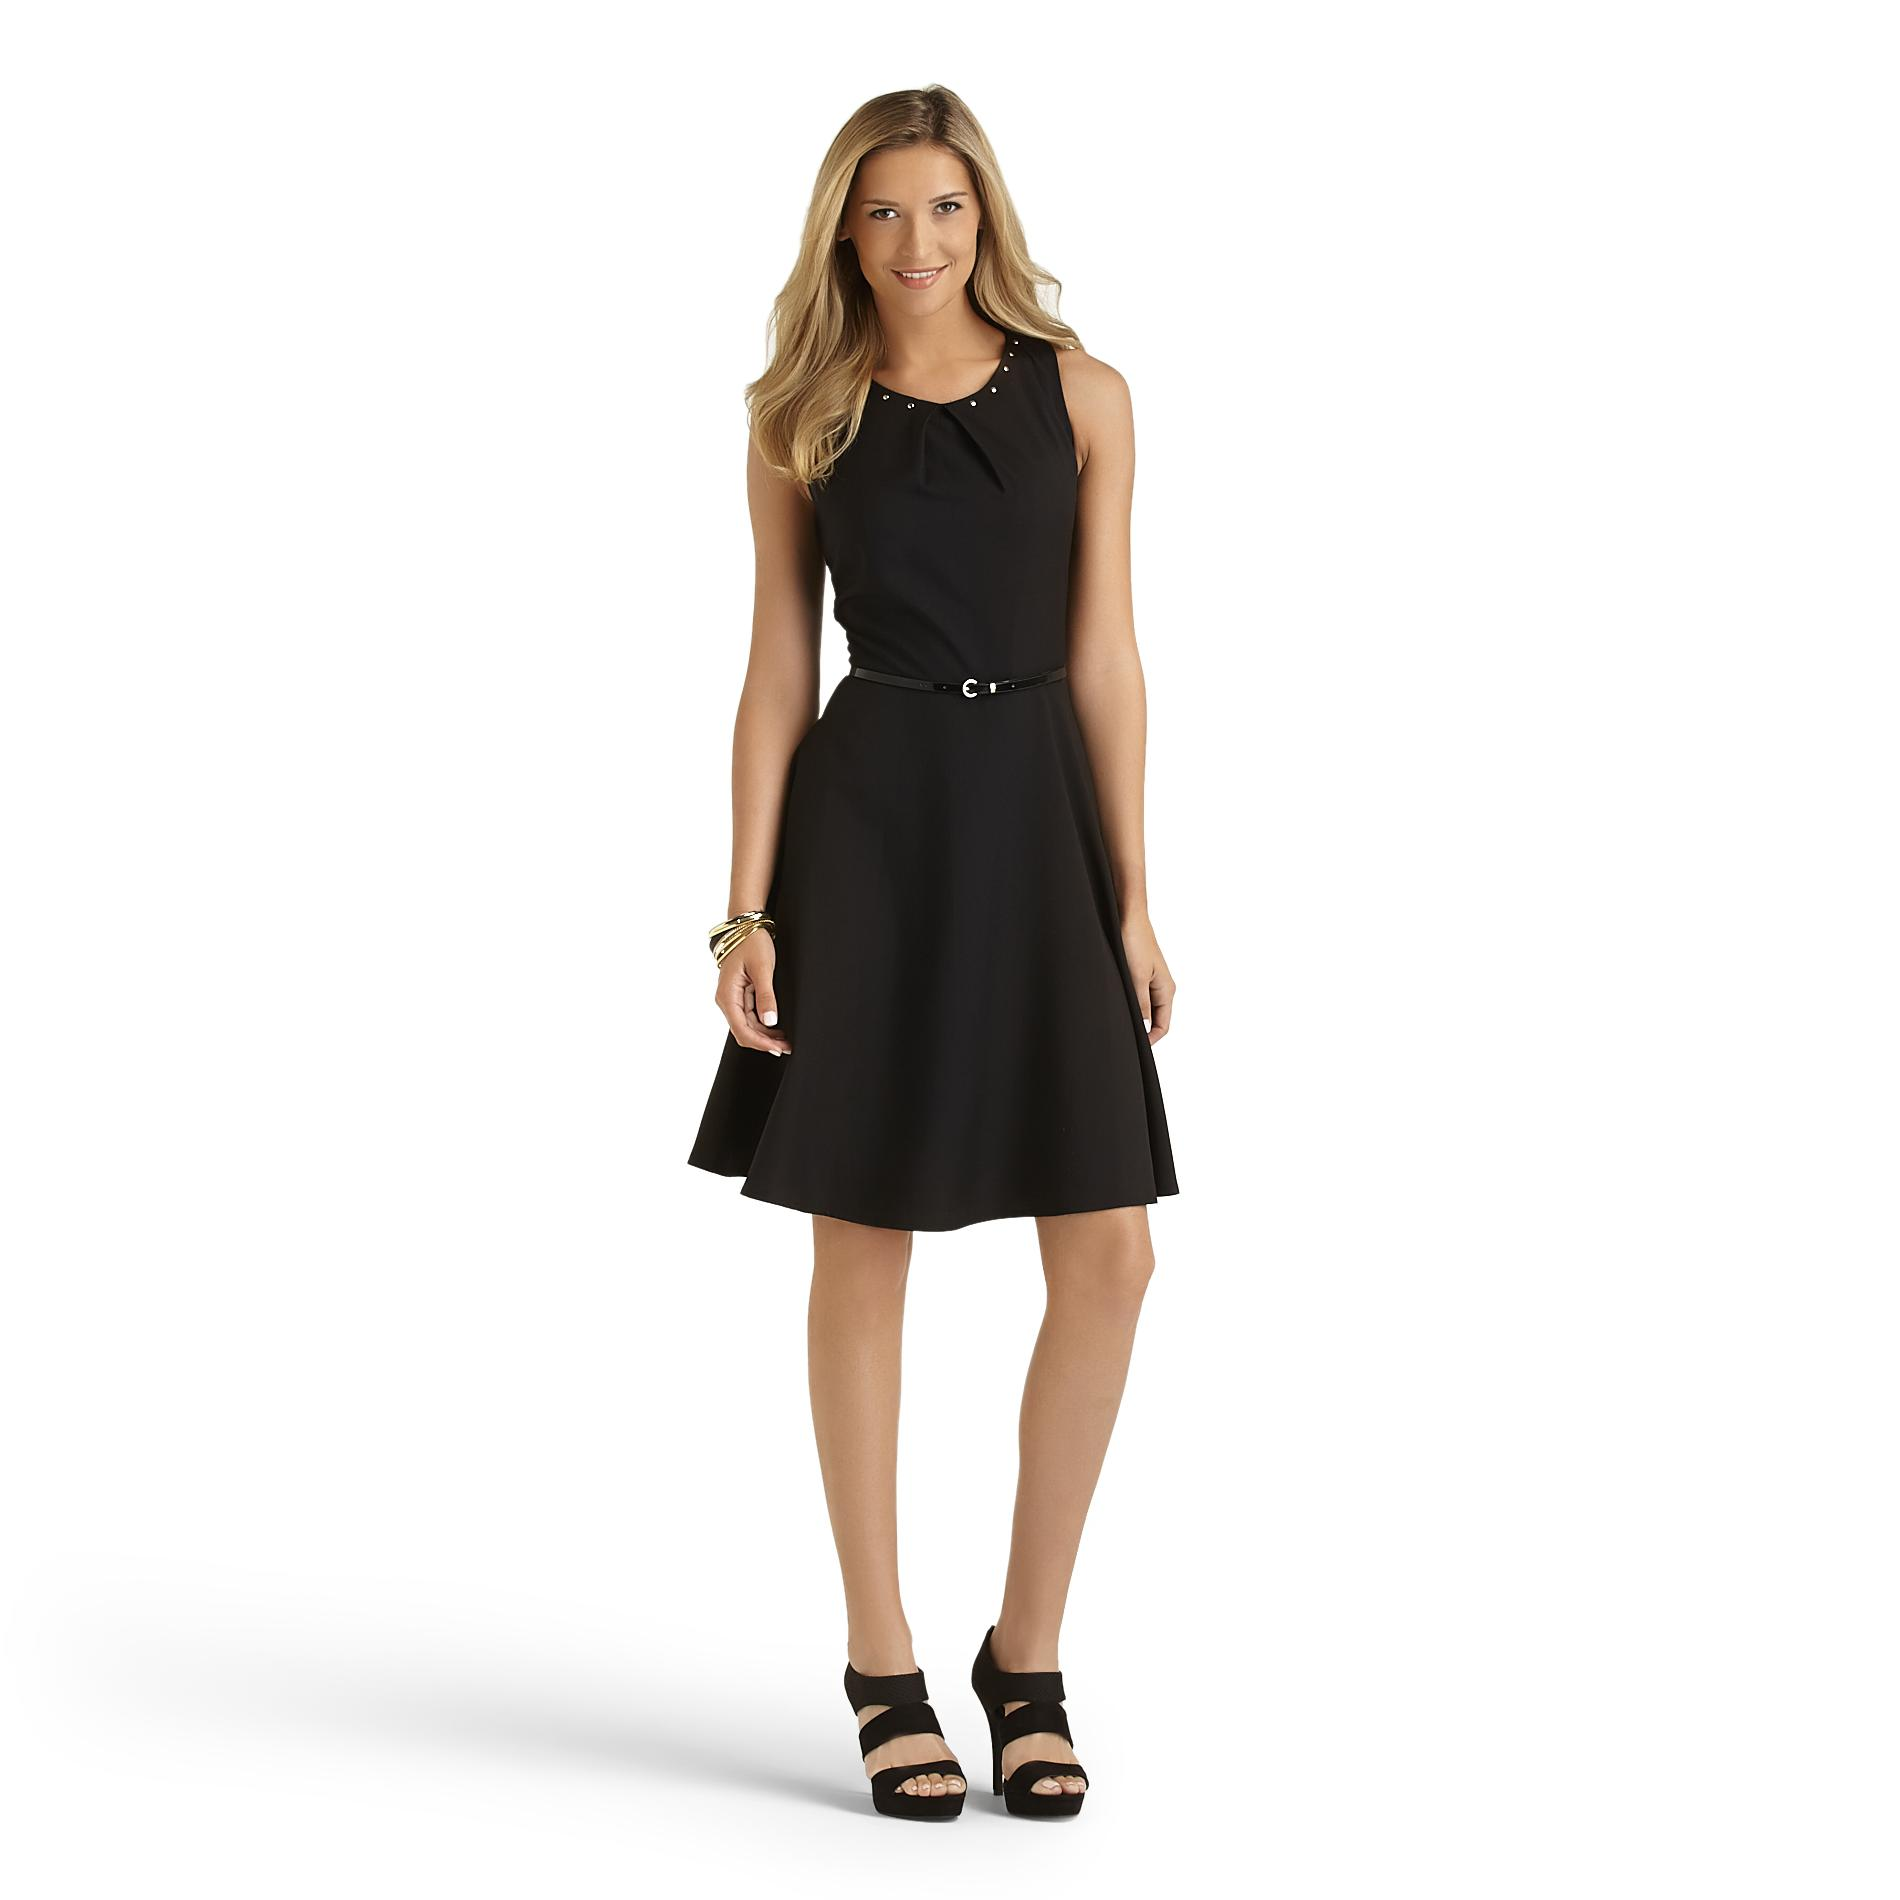 Women's Sleeveless Dress & Belt